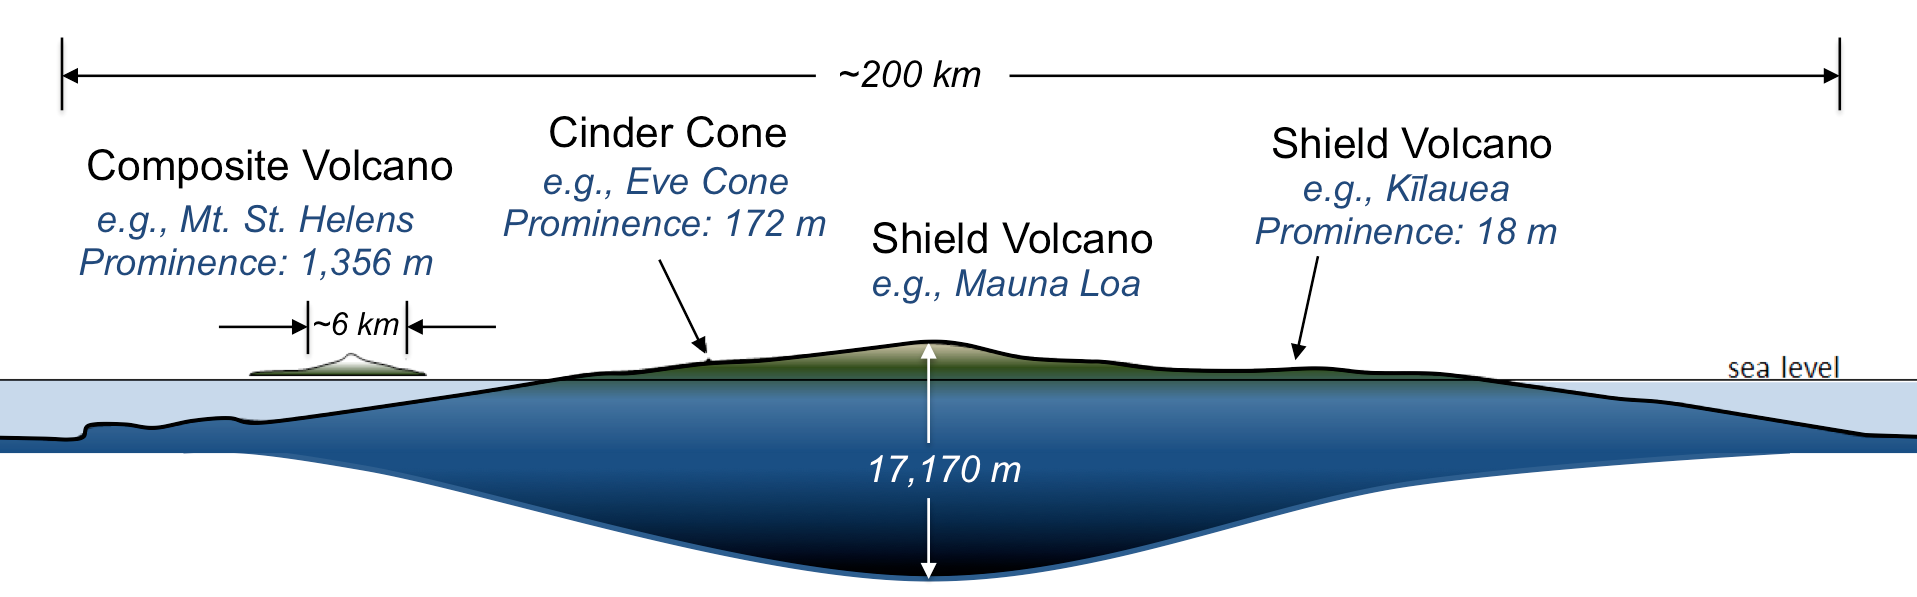 Comparison of volcano sizes and shapes. Broad, rounded shield volcanoes are the largest, followed by cone-shaped composite volcanoes. Straight-sided cinder cones are the smallest.